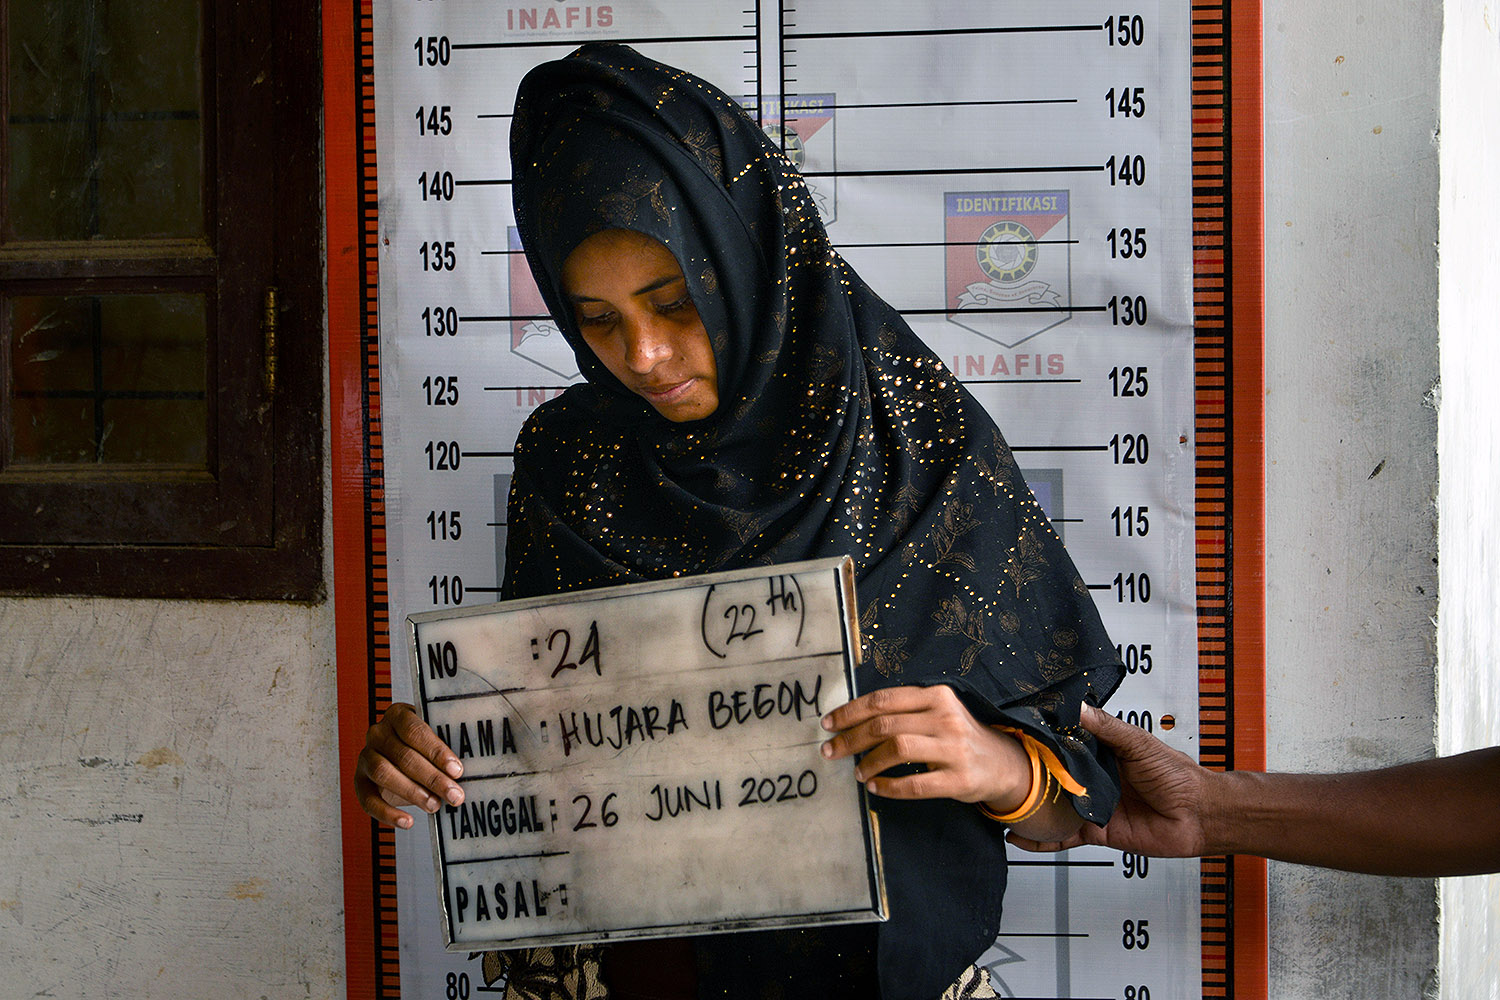 A Rohingya woman from Myanmar goes through an identification procedure by Indonesian police at the immigration detention center in Lhokseumawe, Sumatra, on June 26. CHAIDEER MAHYUDDIN/AFP via Getty Images